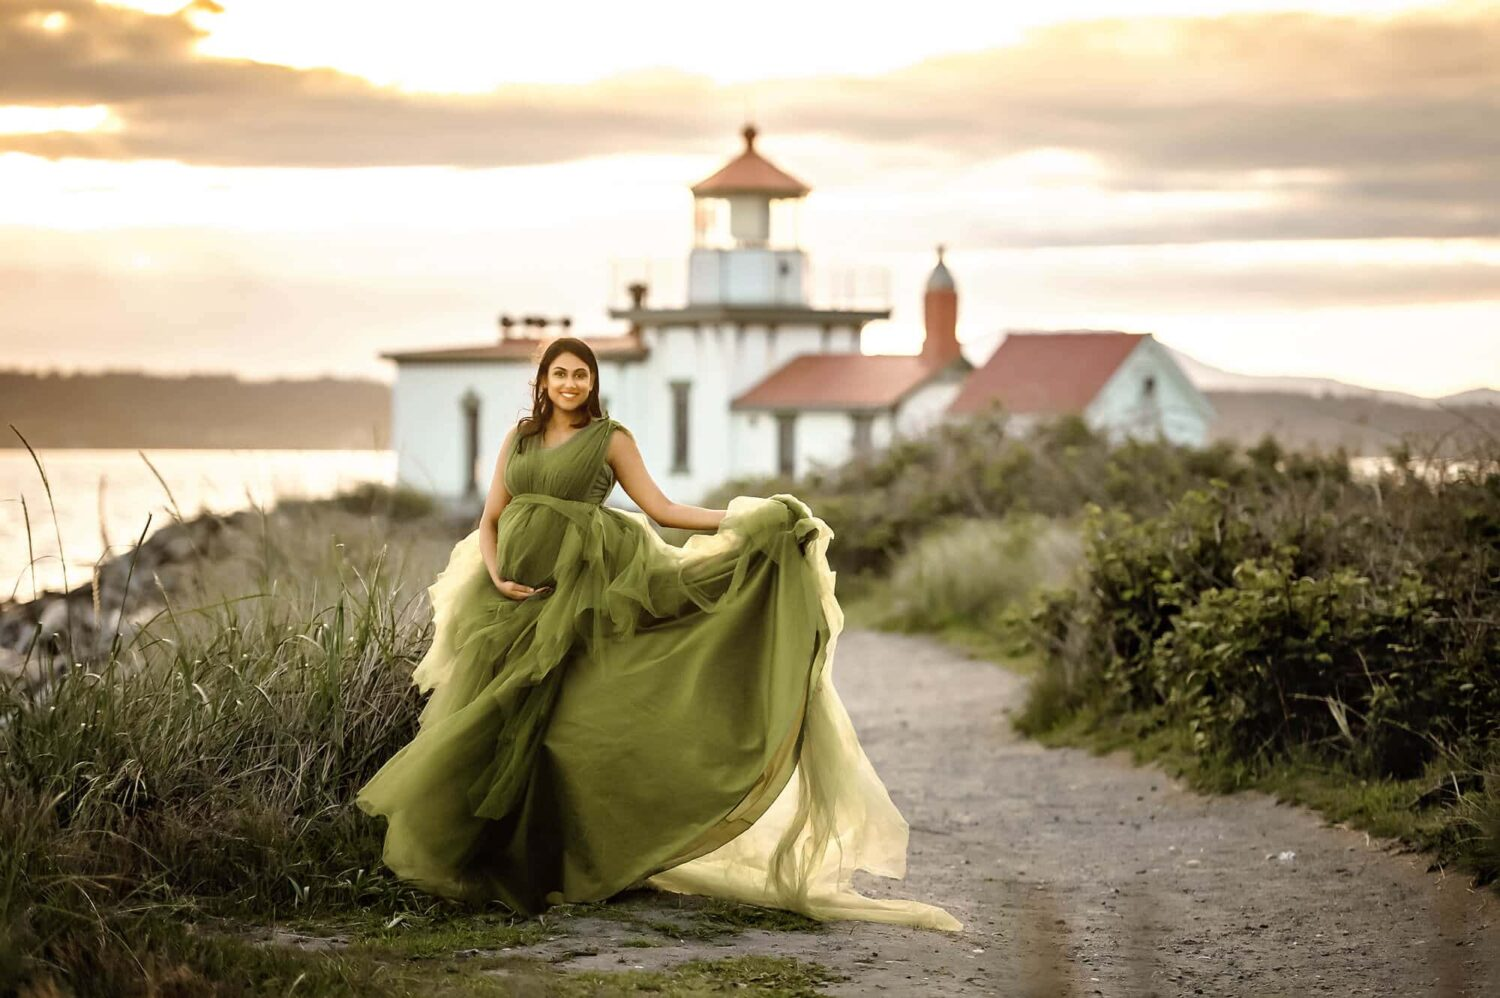 Discovery Park Westpoint Lighthouse Maternity Photo